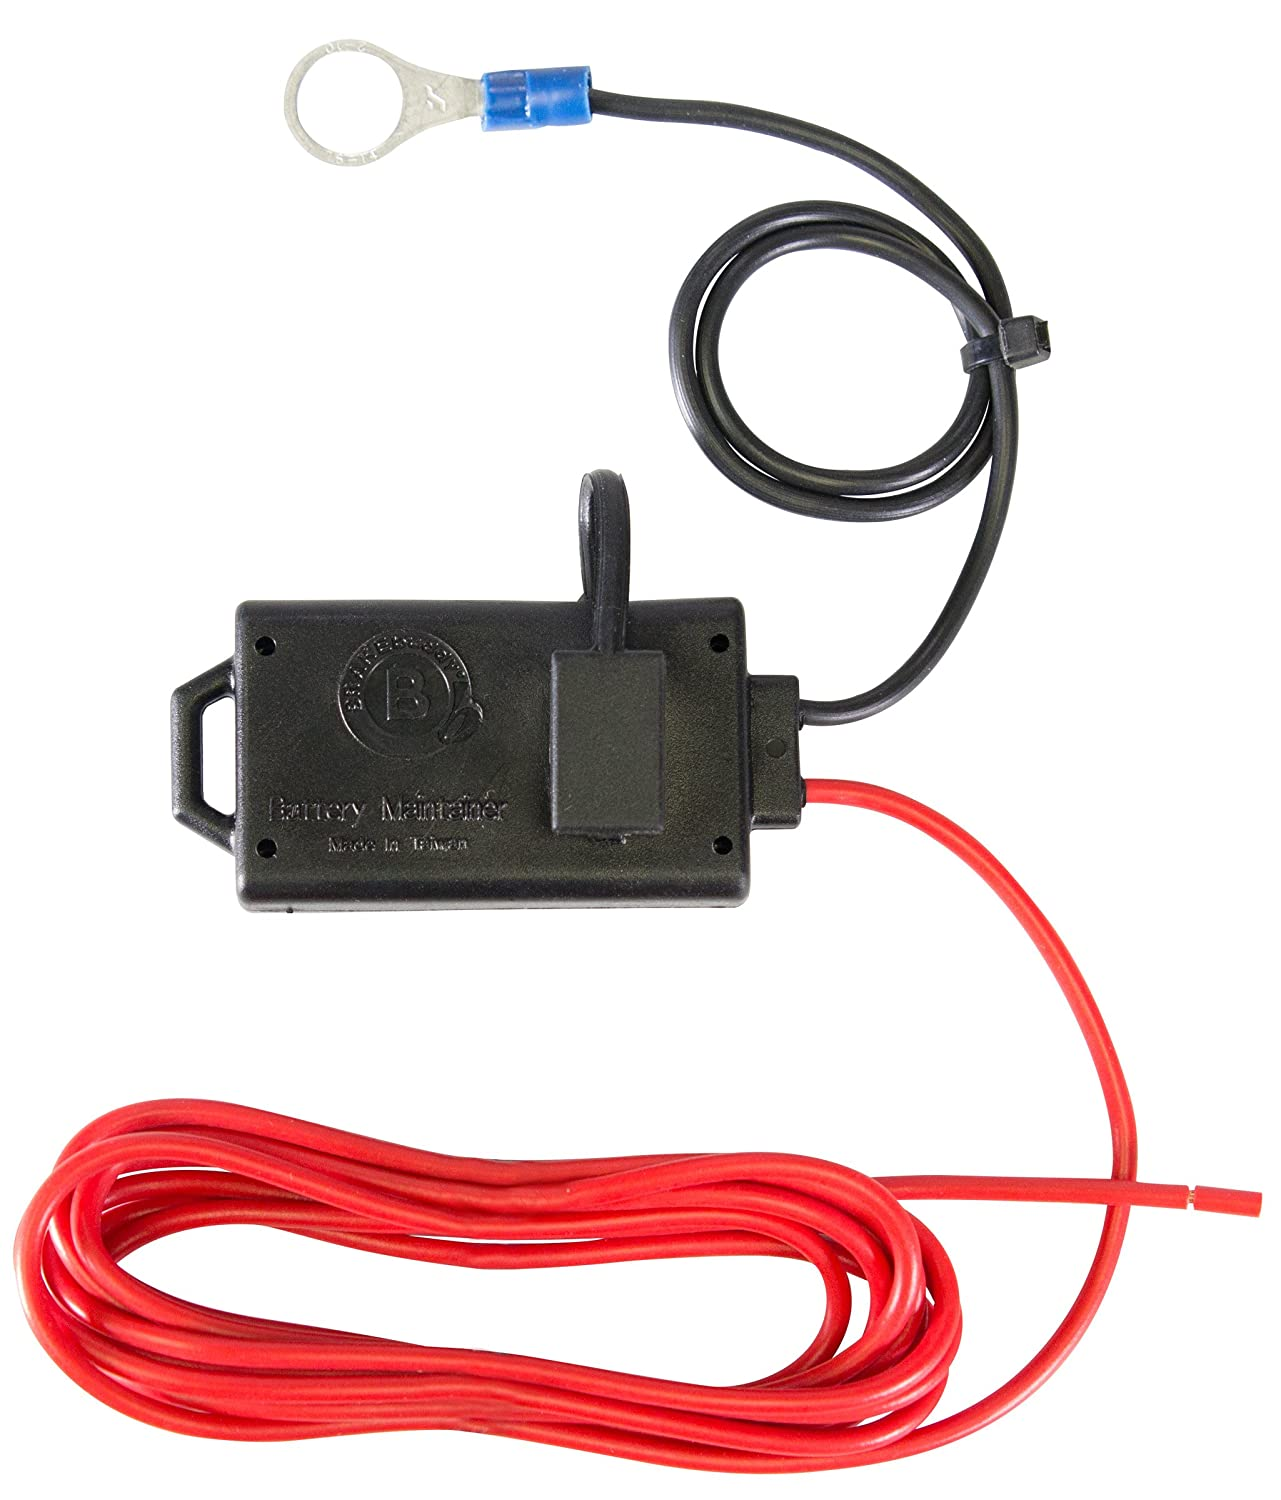 Hopkins 39332 BrakeBuddy Towed Vehicle Battery Maintainer